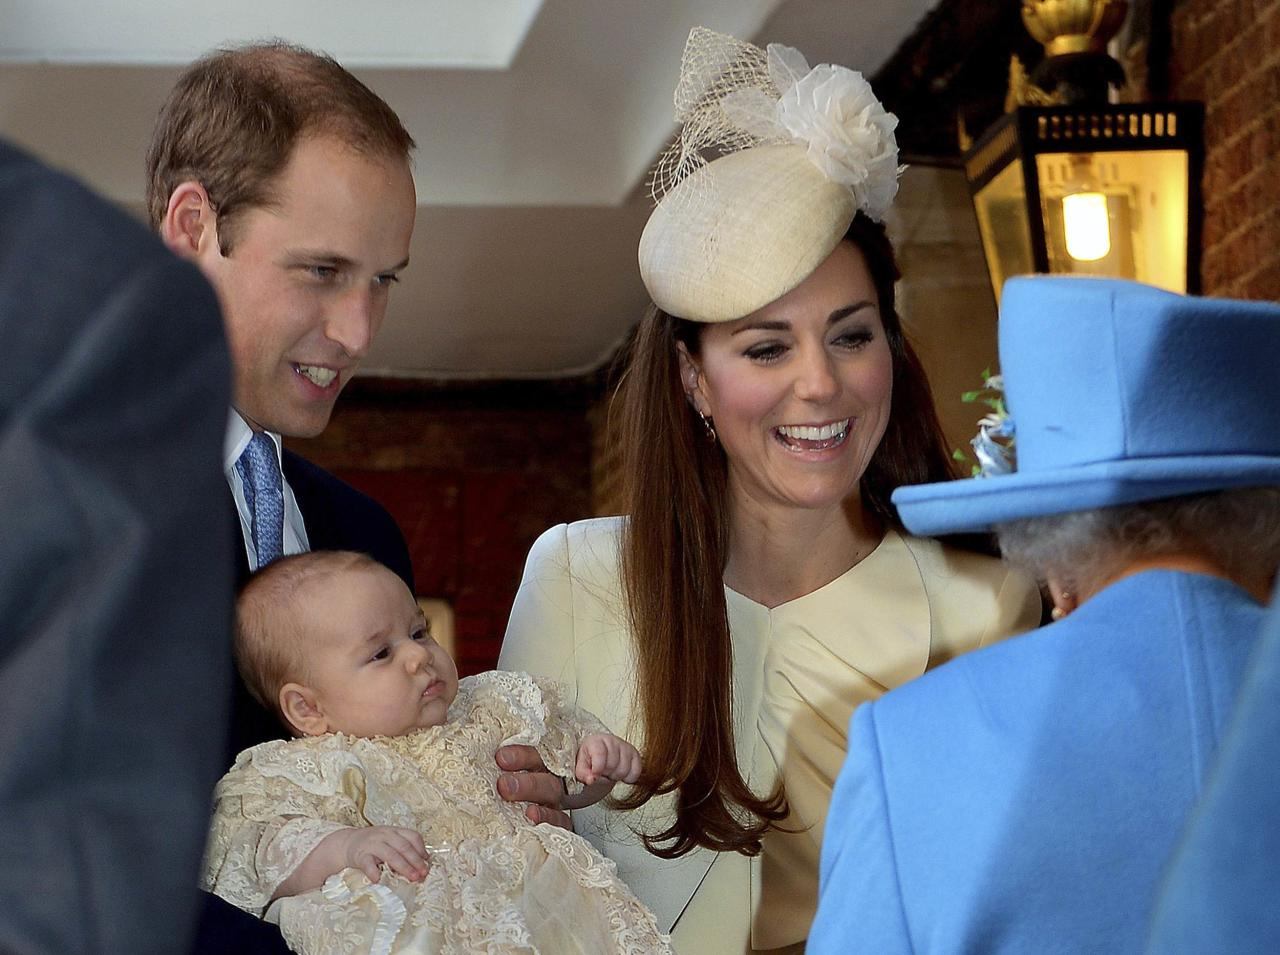 Britain's Prince William carries his son Prince George, as he arrives with his wife Catherine, Duchess of Cambridge for their son's christening at St James's Palace in London October 23, 2013. REUTERS/John Stillwell/pool (BRITAIN - Tags: ROYALS ENTERTAINMENT SOCIETY)